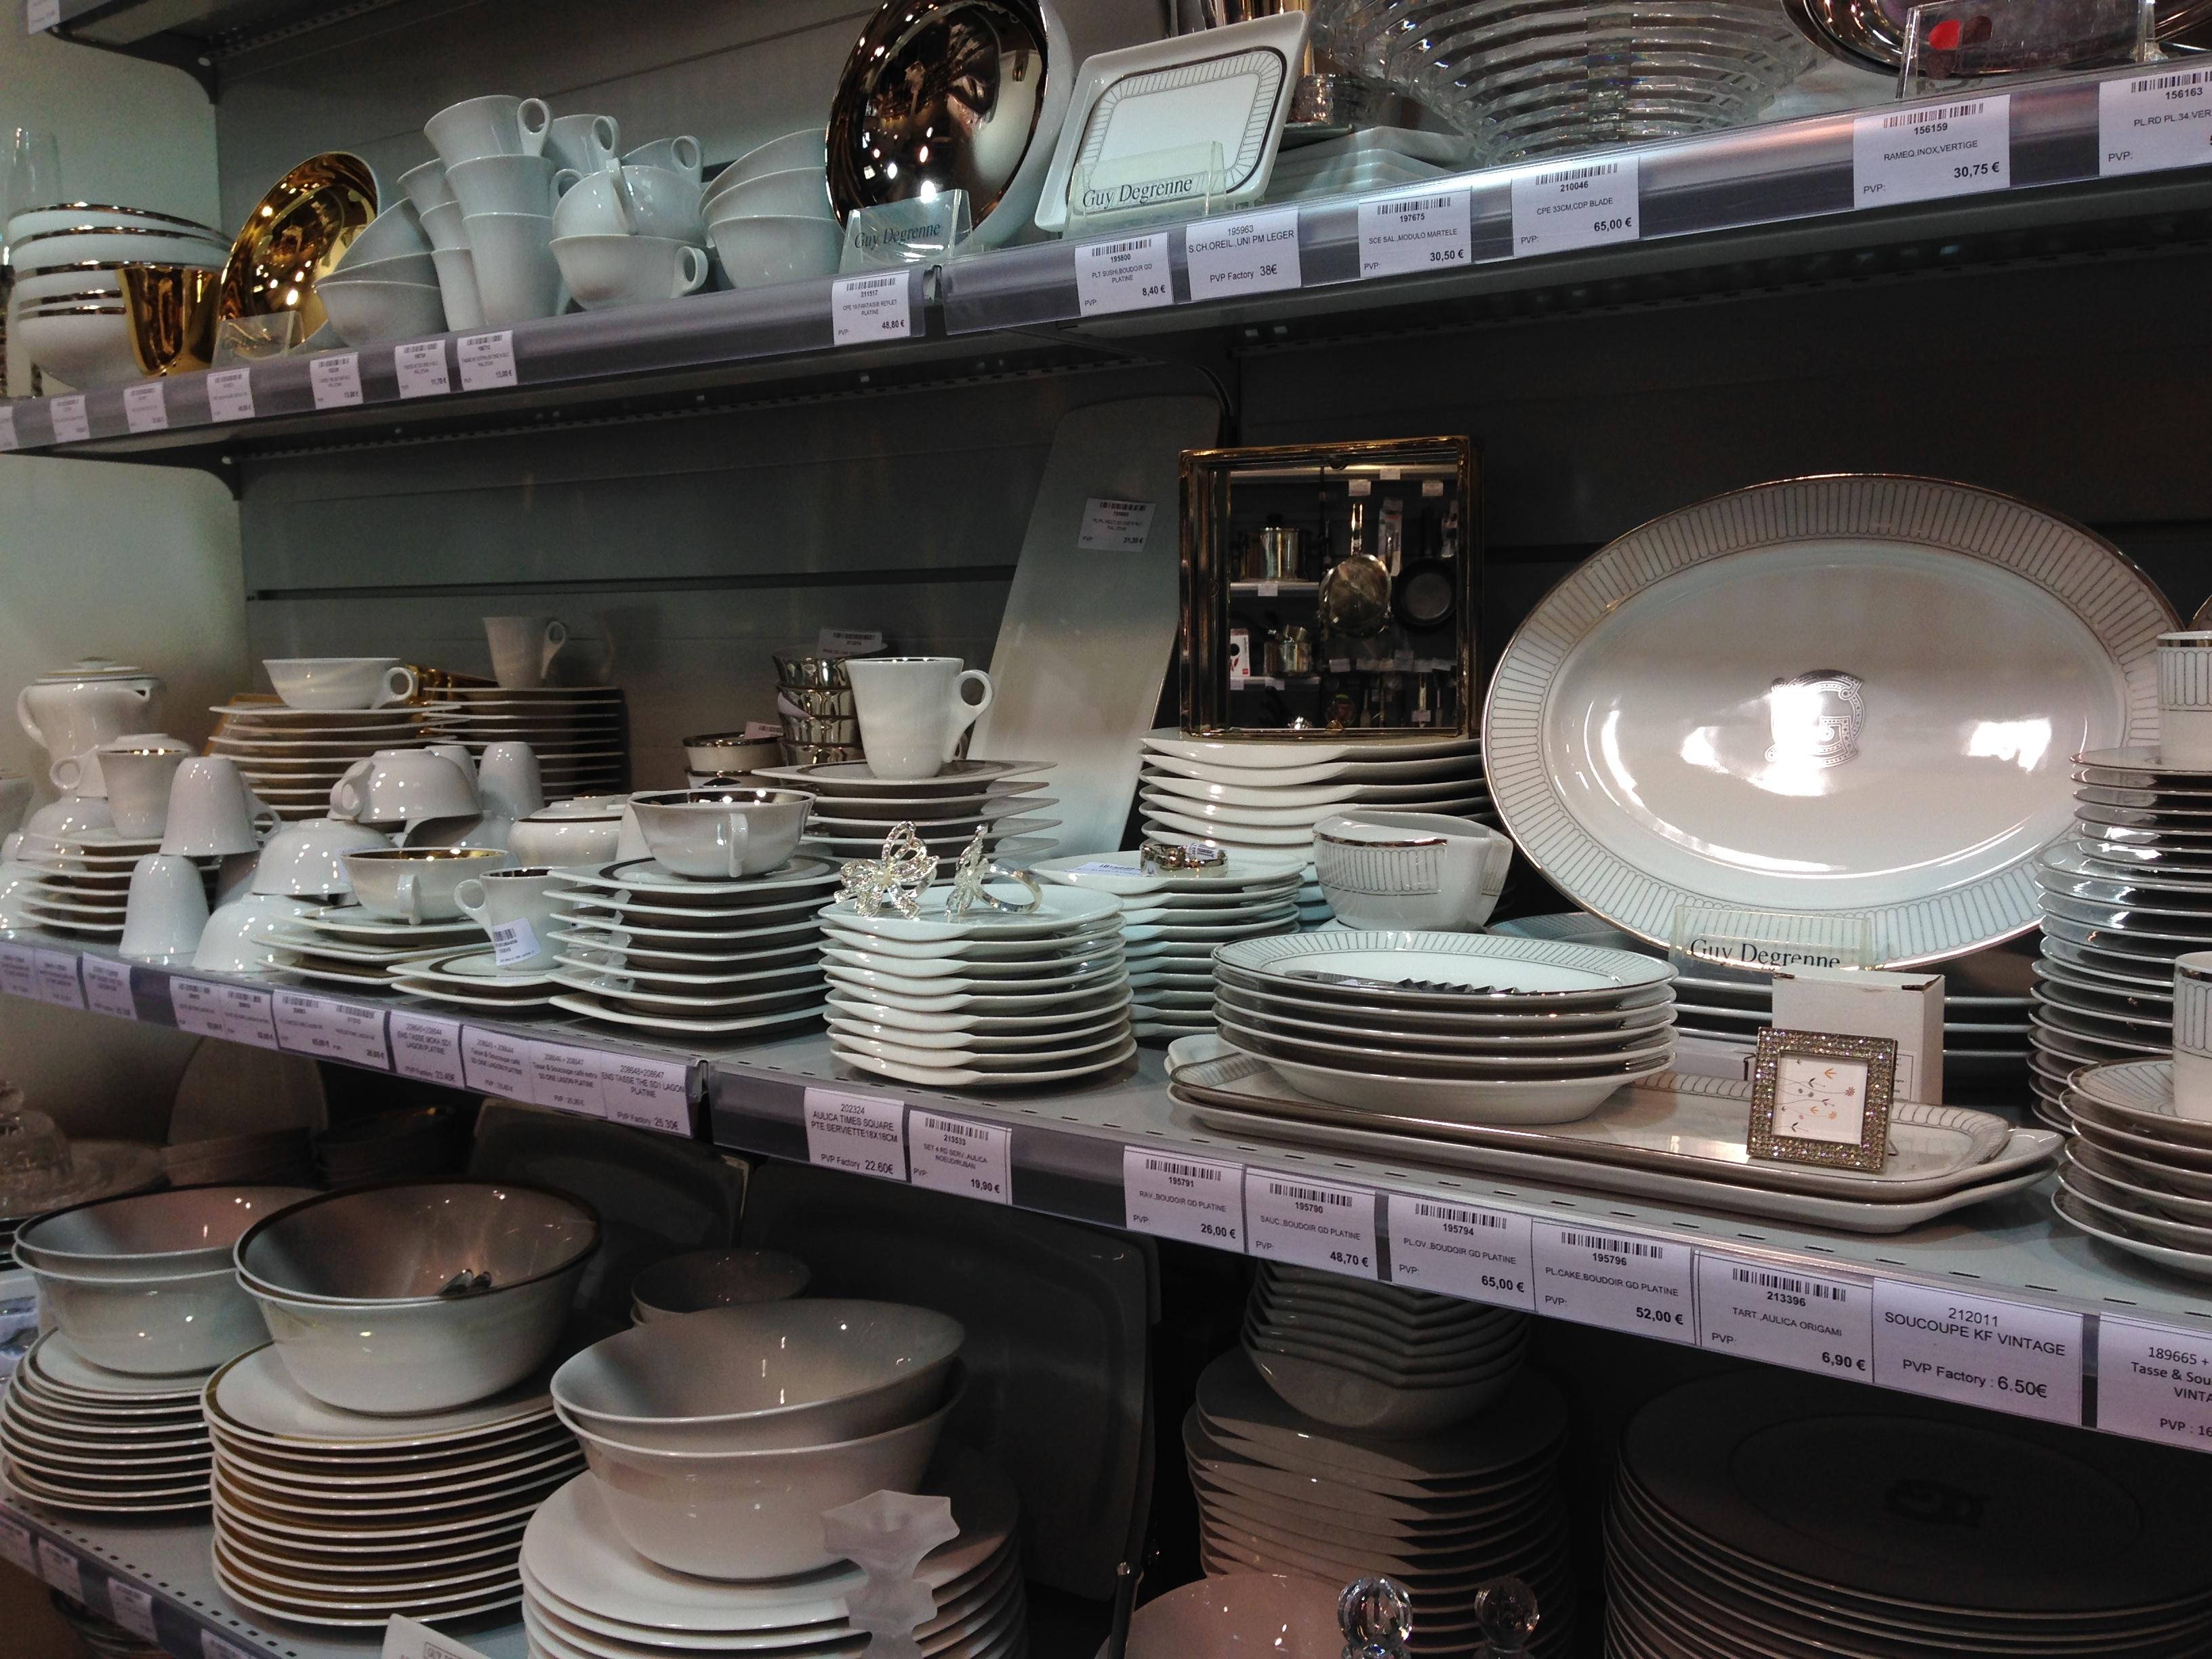 Magasin usine limoges - Magasin chaussure limoges ...